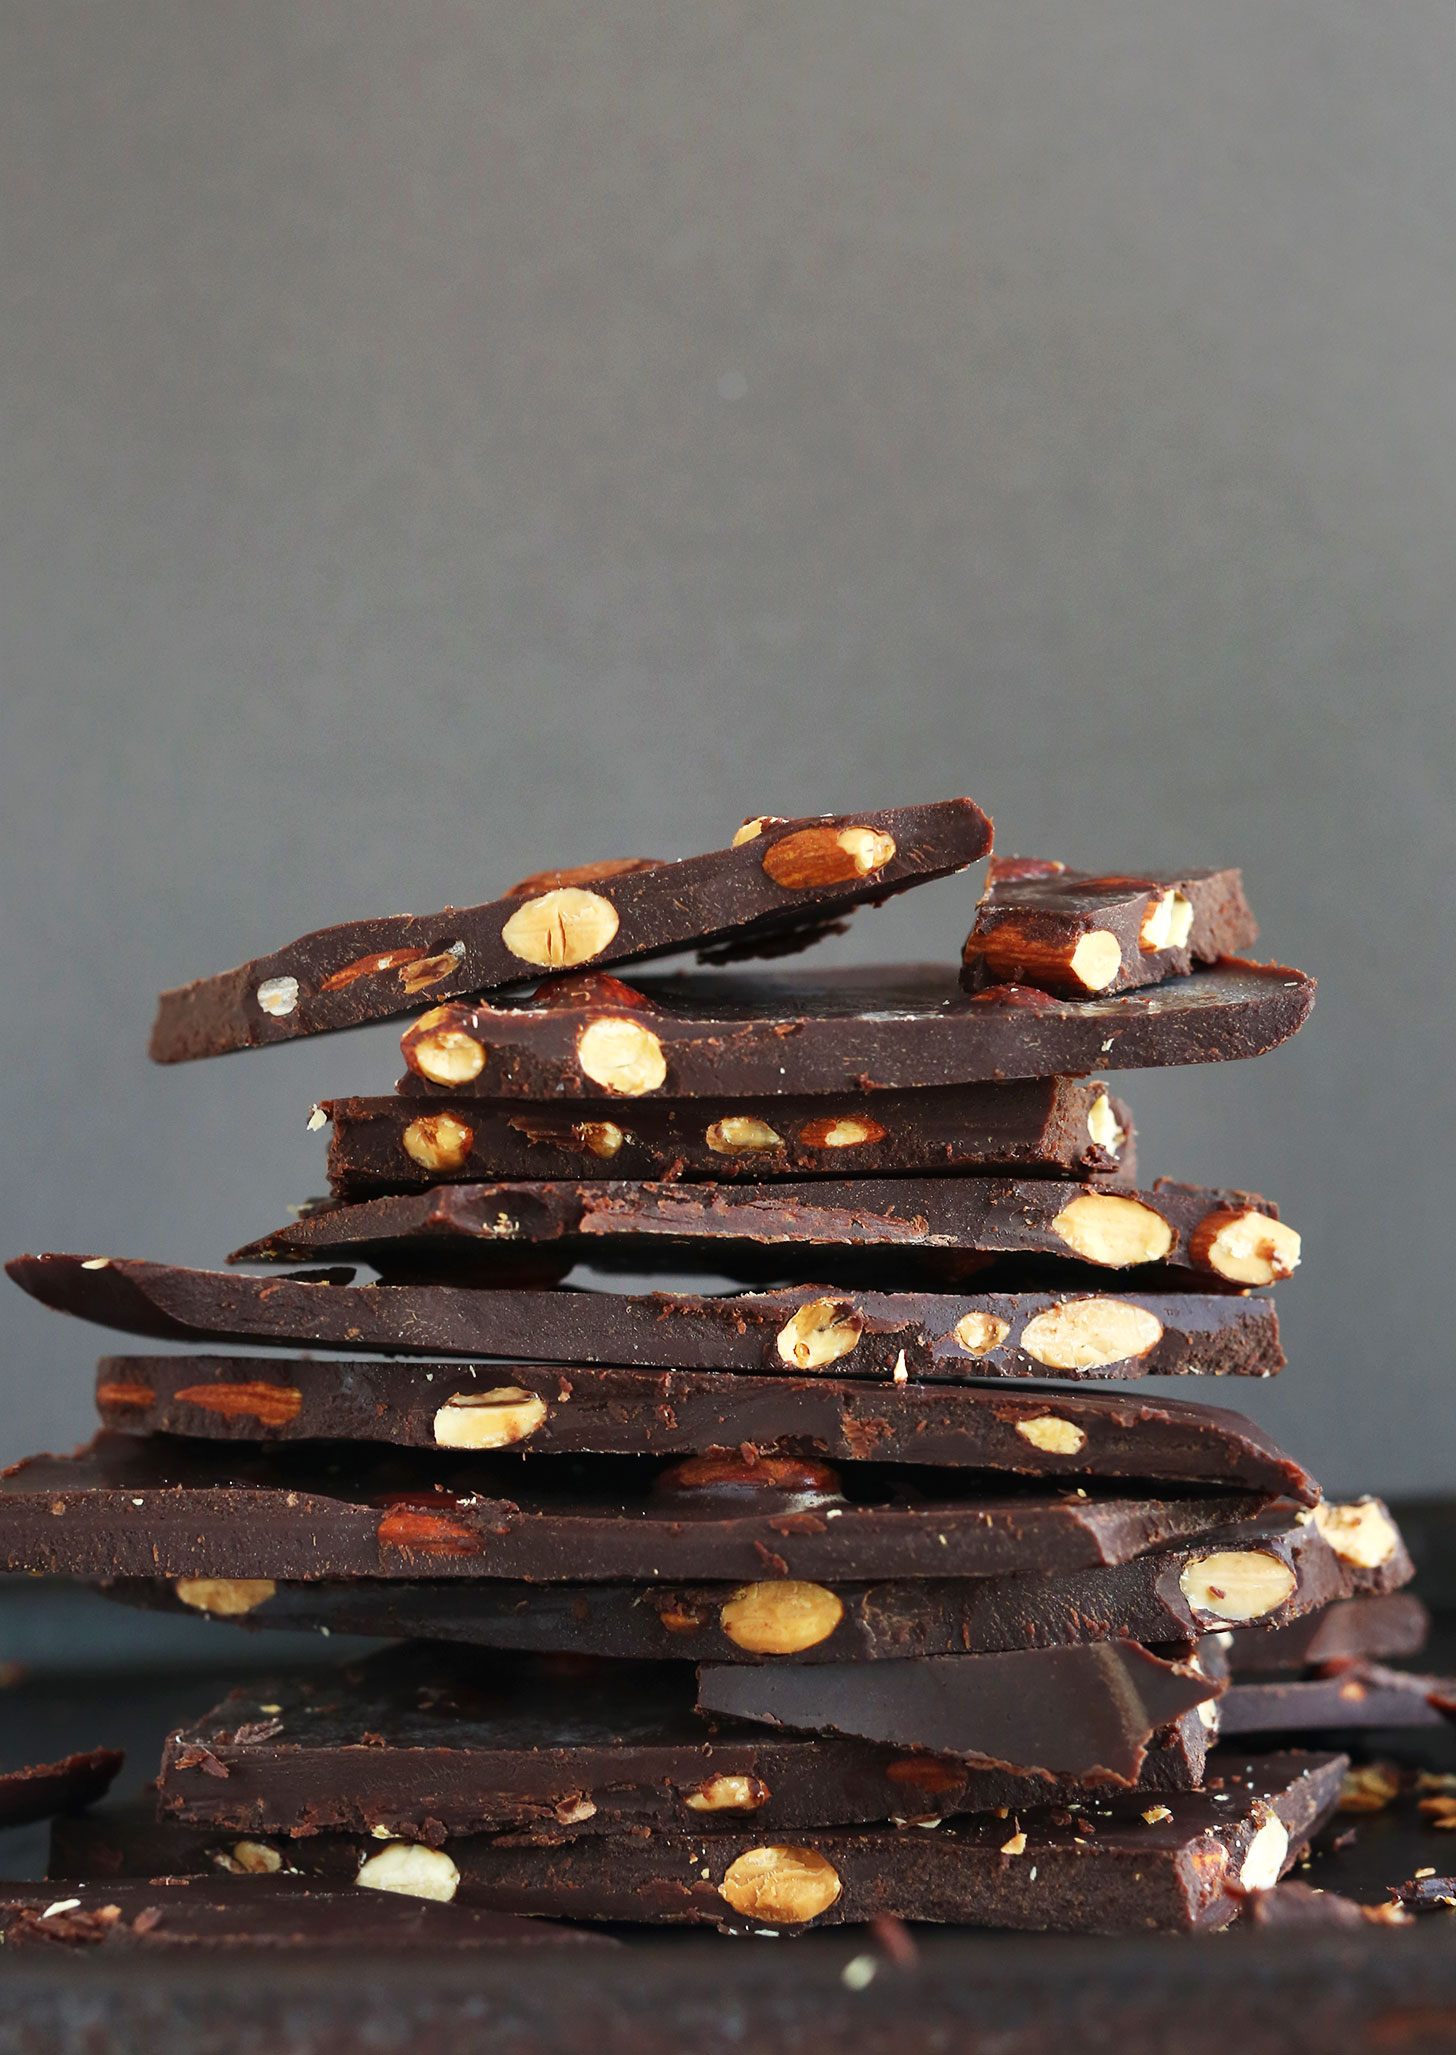 Stack of our DIY Vegan Dark Chocolate Bars with Almonds